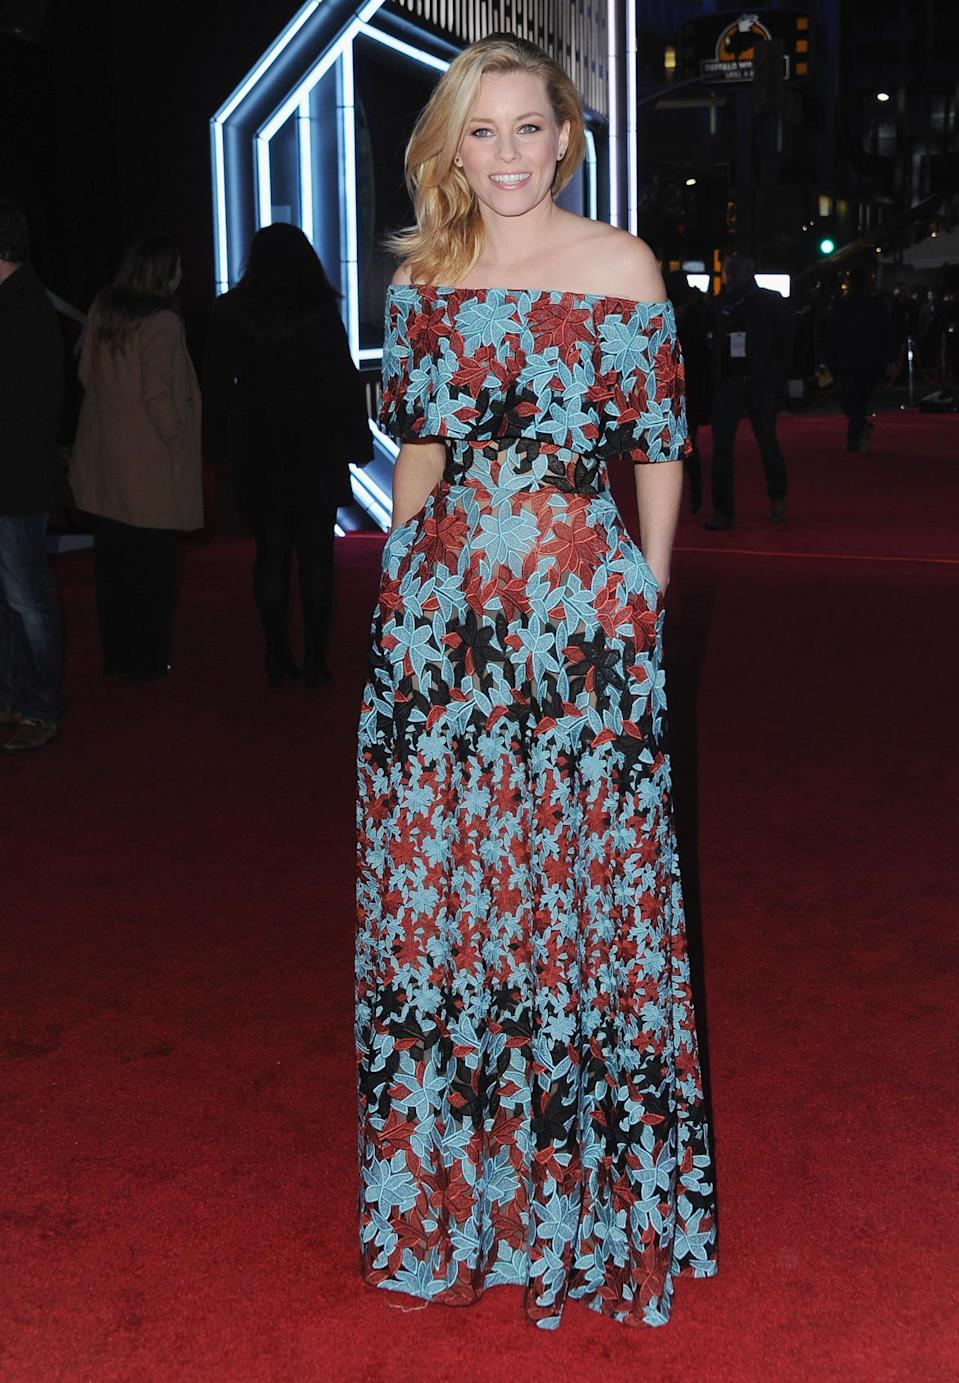 <p>Banks brought some much-needed color to the <i>Star Wars</i> red carpet, wearing a blue, red, and black lace dress by Elie Saab. </p><p><i>Photo: Getty Images</i><br></p>